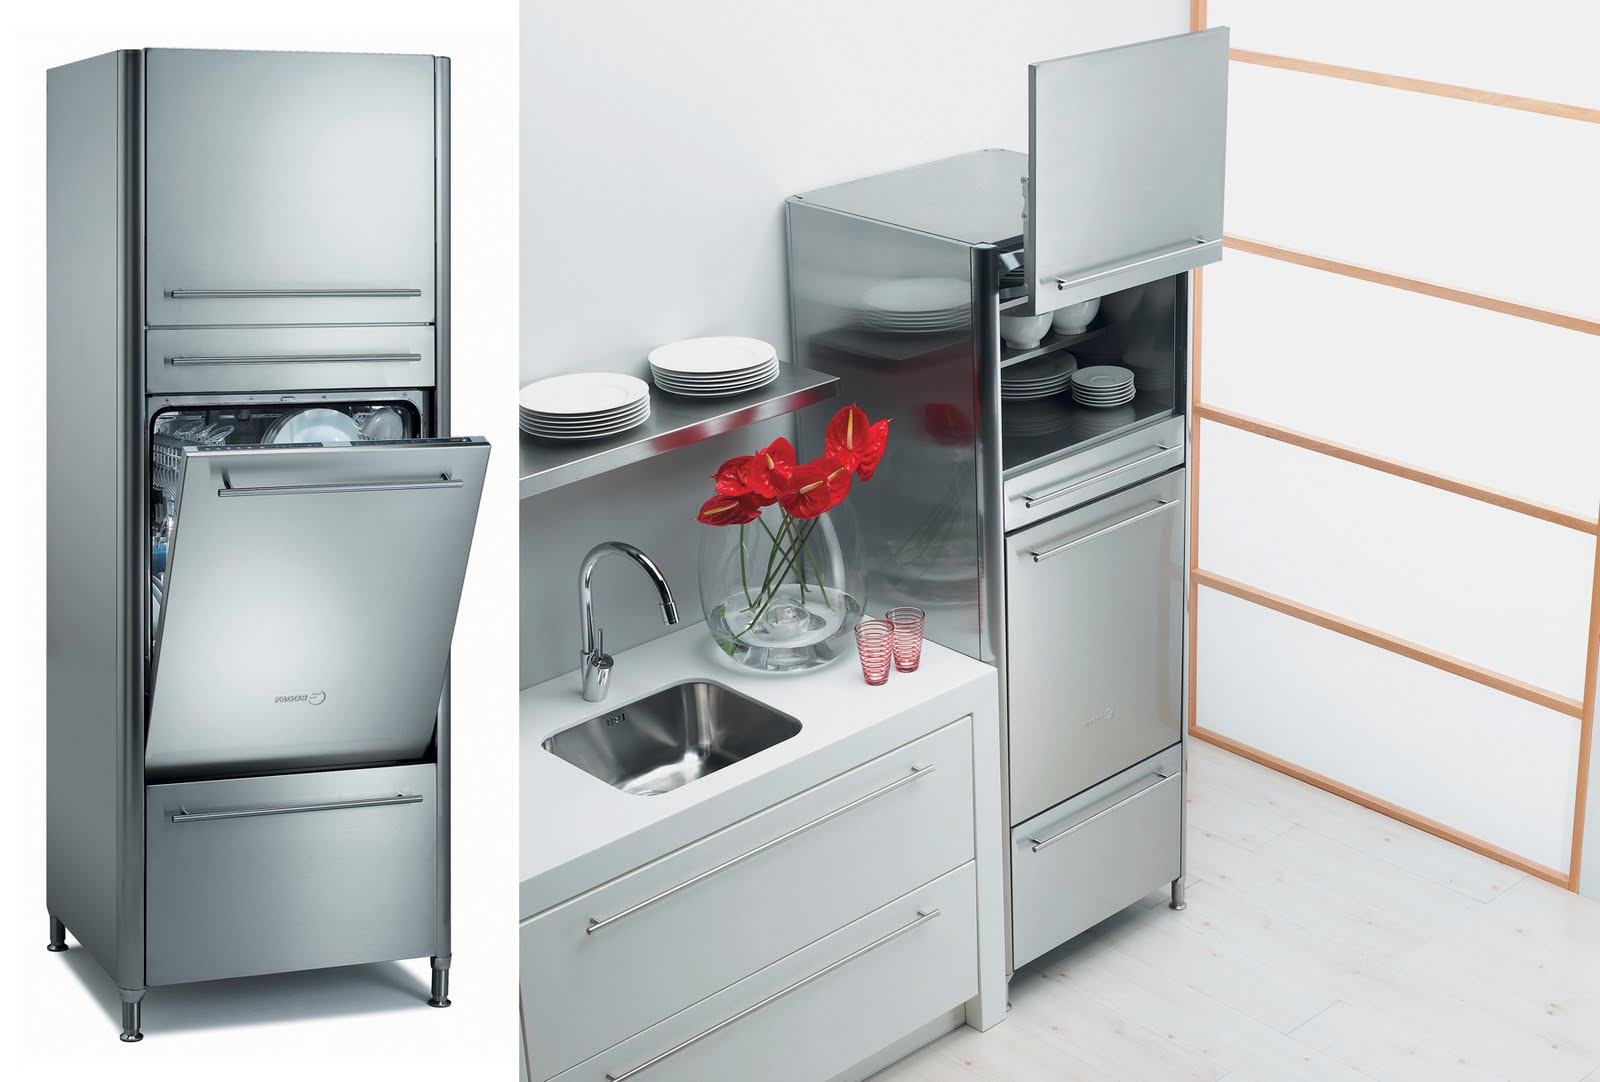 The kitchen and bath people design ideas for your small for Small dishwashers for small kitchens